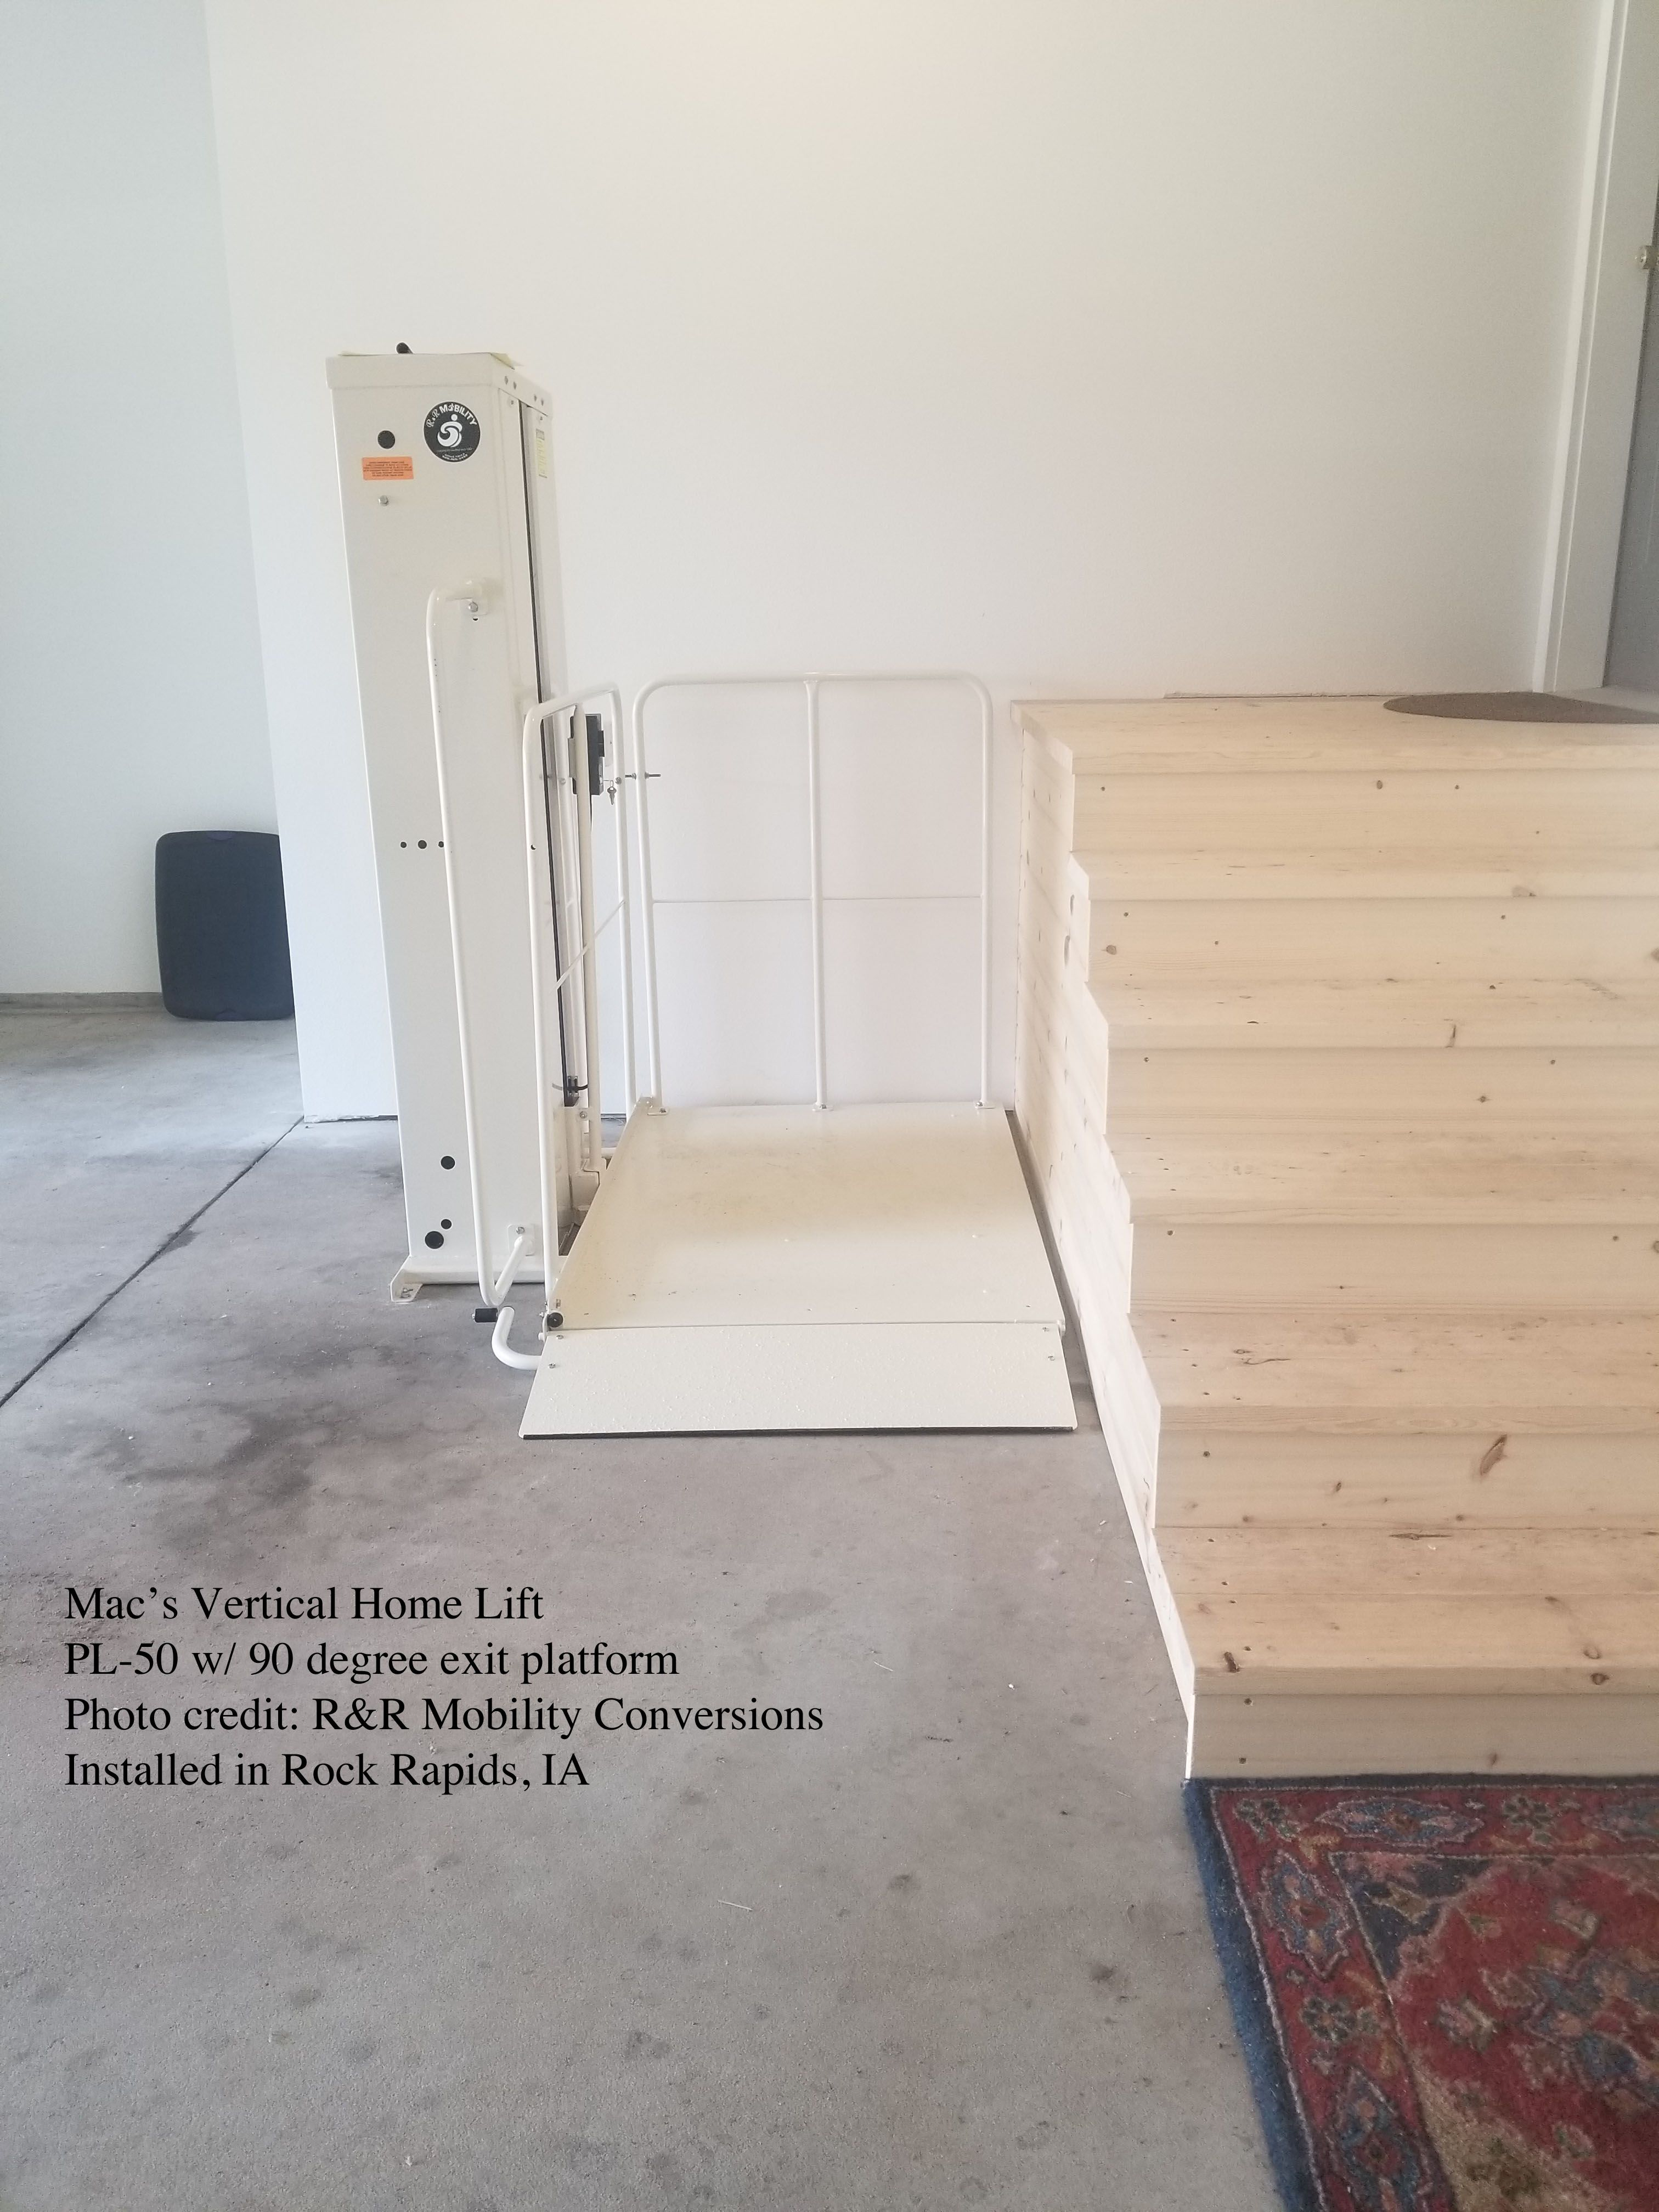 Mac S Vertical Home Lift Pl 50 Pl 72 Pl 90 Vpl Vertical Platform Lift Porch Lift Wheelchair Lift Handicapped Lift Handicap Lifts Home Universal Design